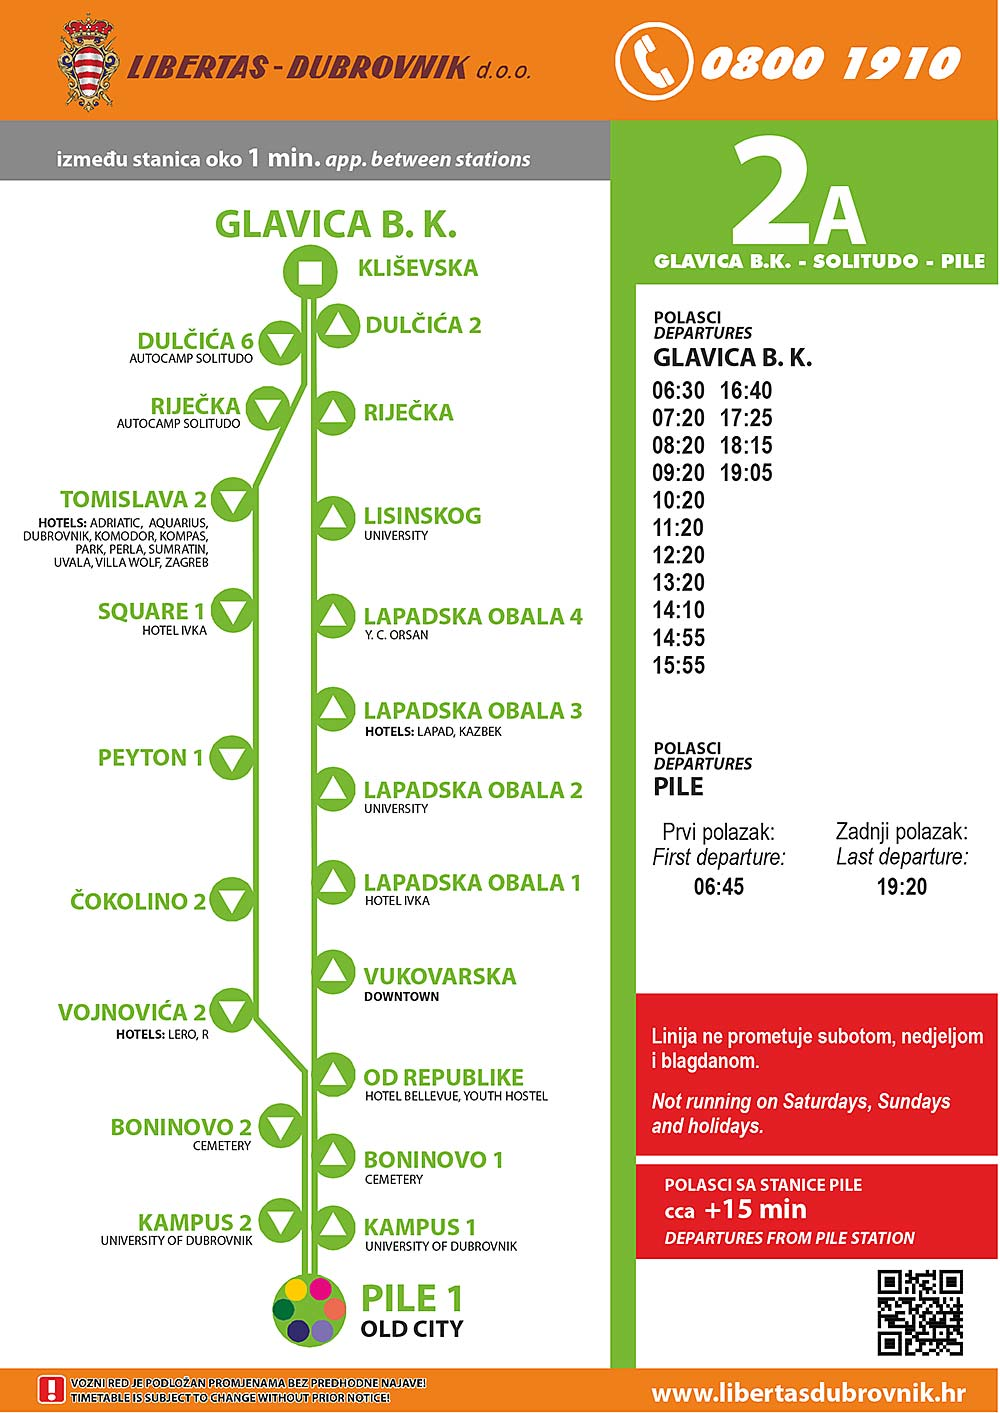 Timetables and info about Dubrovnik Bus Line 2a: From Glavica Lapad via Boninovo to Pile (Old Town) and back via Lapadska Obala